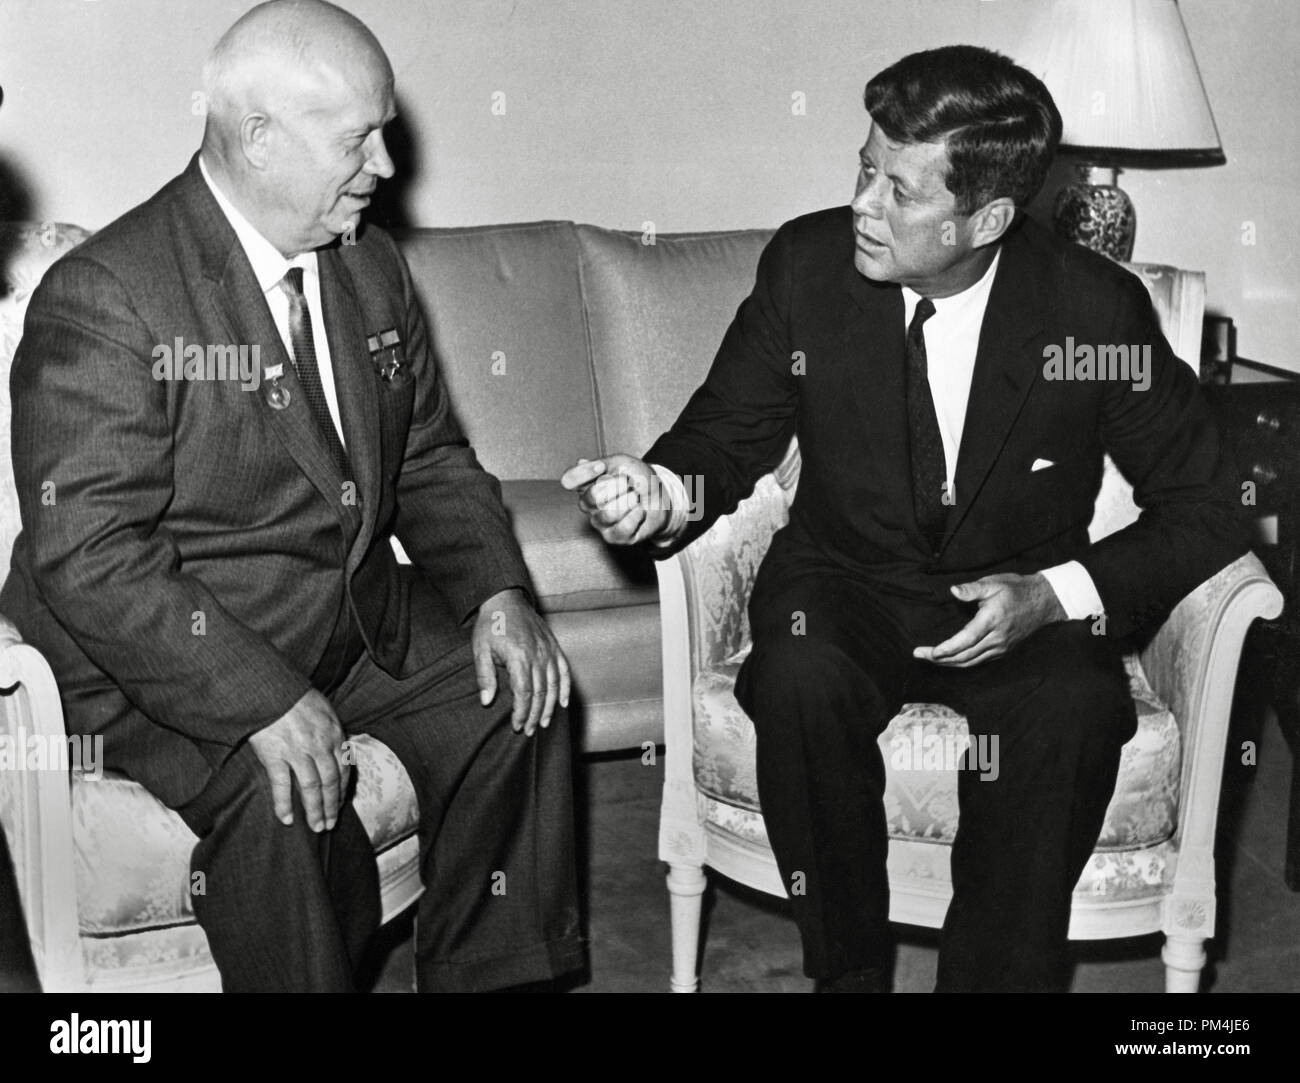 President John F. Kennedy meets with Nikita Khrushchev, chairman of the council of Ministers of the Soviet Union, at the U.S. Embassy residence in Vienna, Austria, 1961   File Reference # 1003_687THA - Stock Image